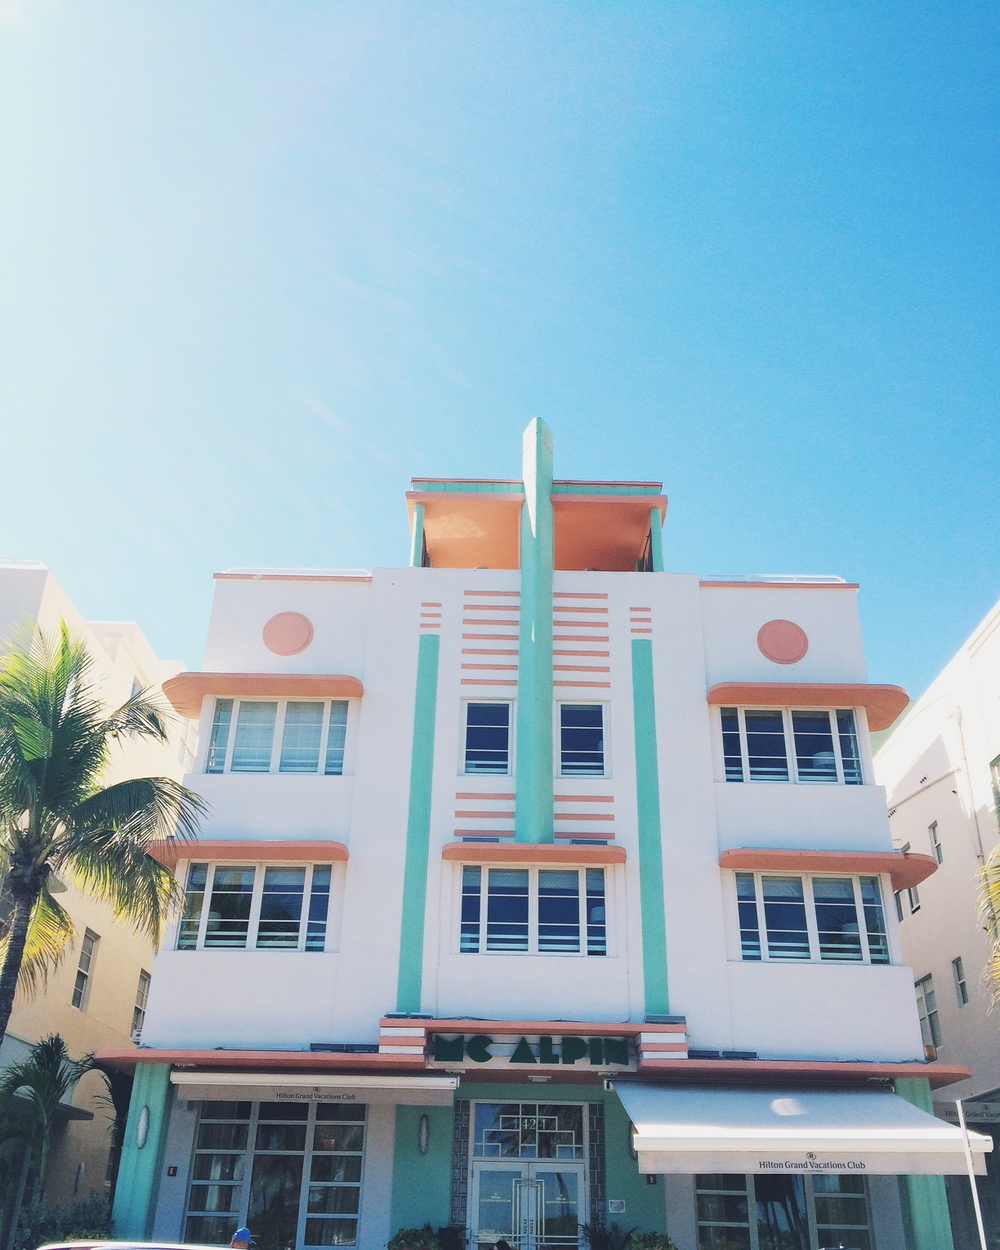 Go Here: Miami Travel Guide